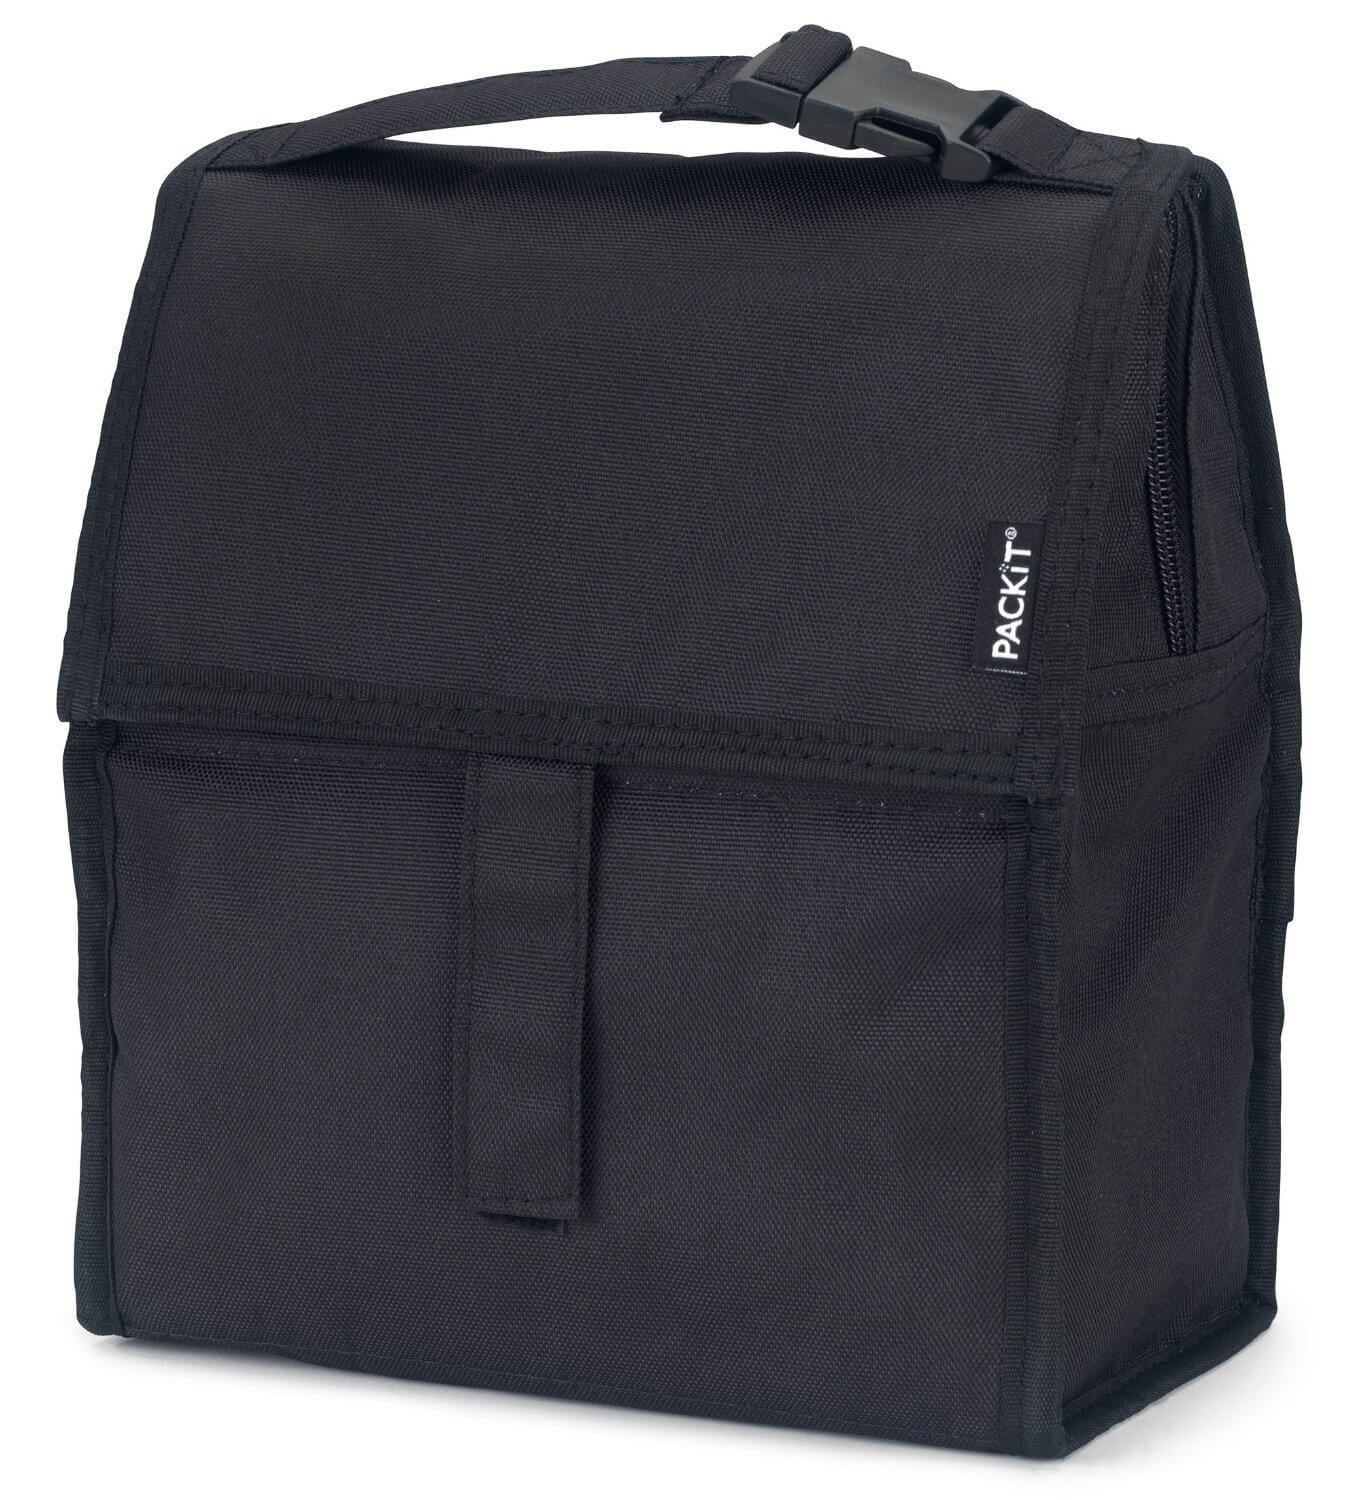 Best lunch bags #1 - PackIt Freezable Lunch Bag